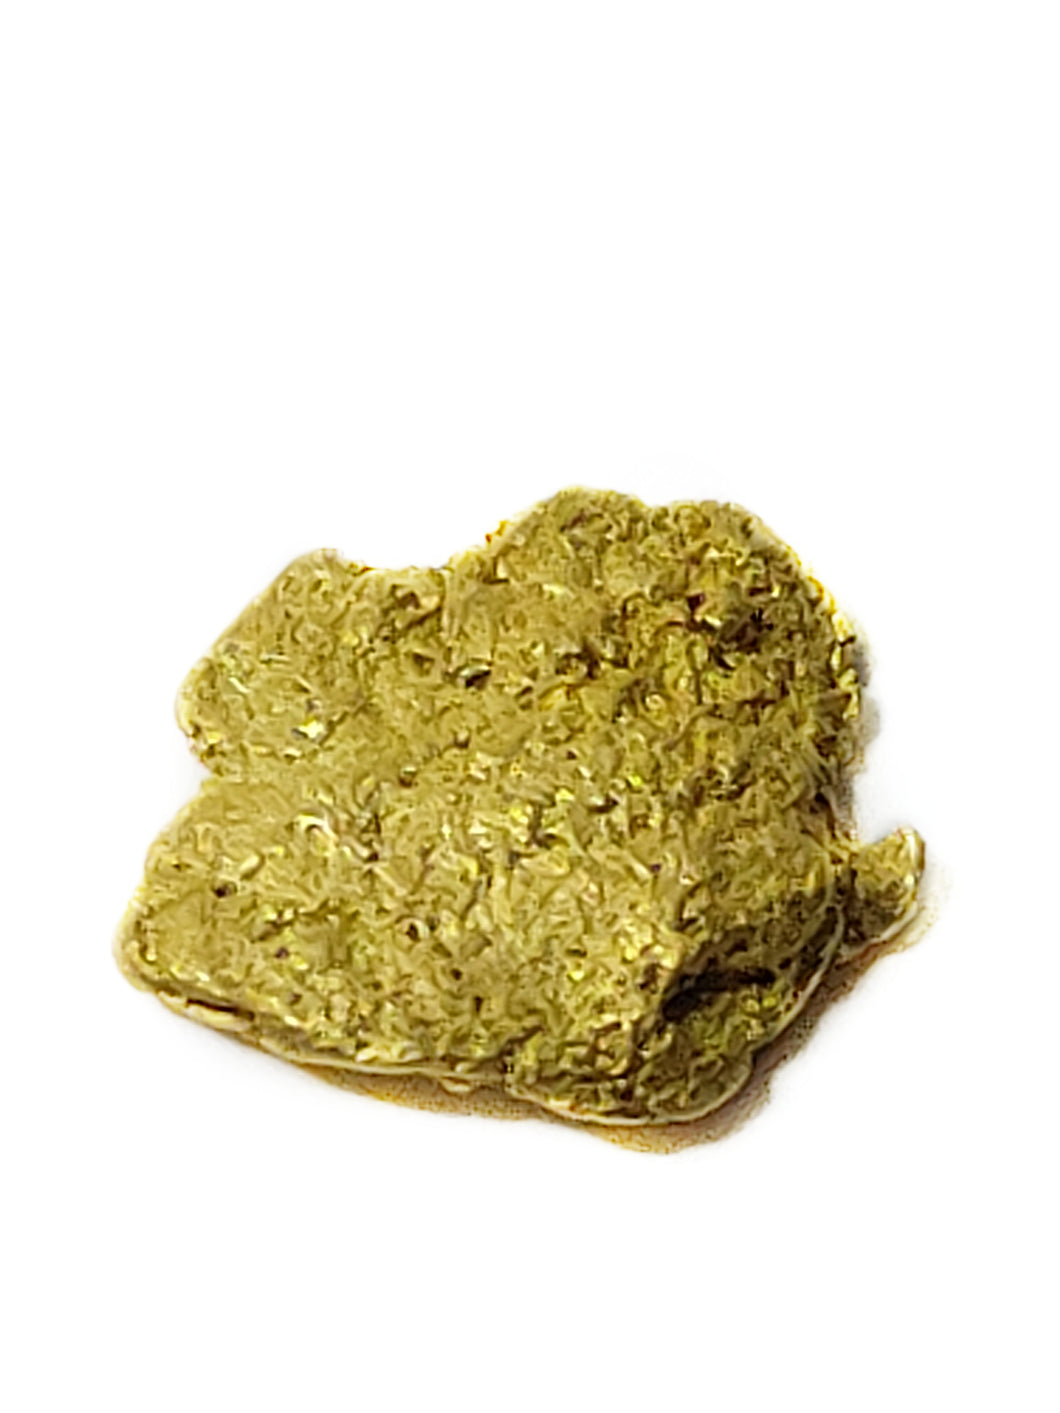 Coolgardie W.A. Gold Nugget 1.052g